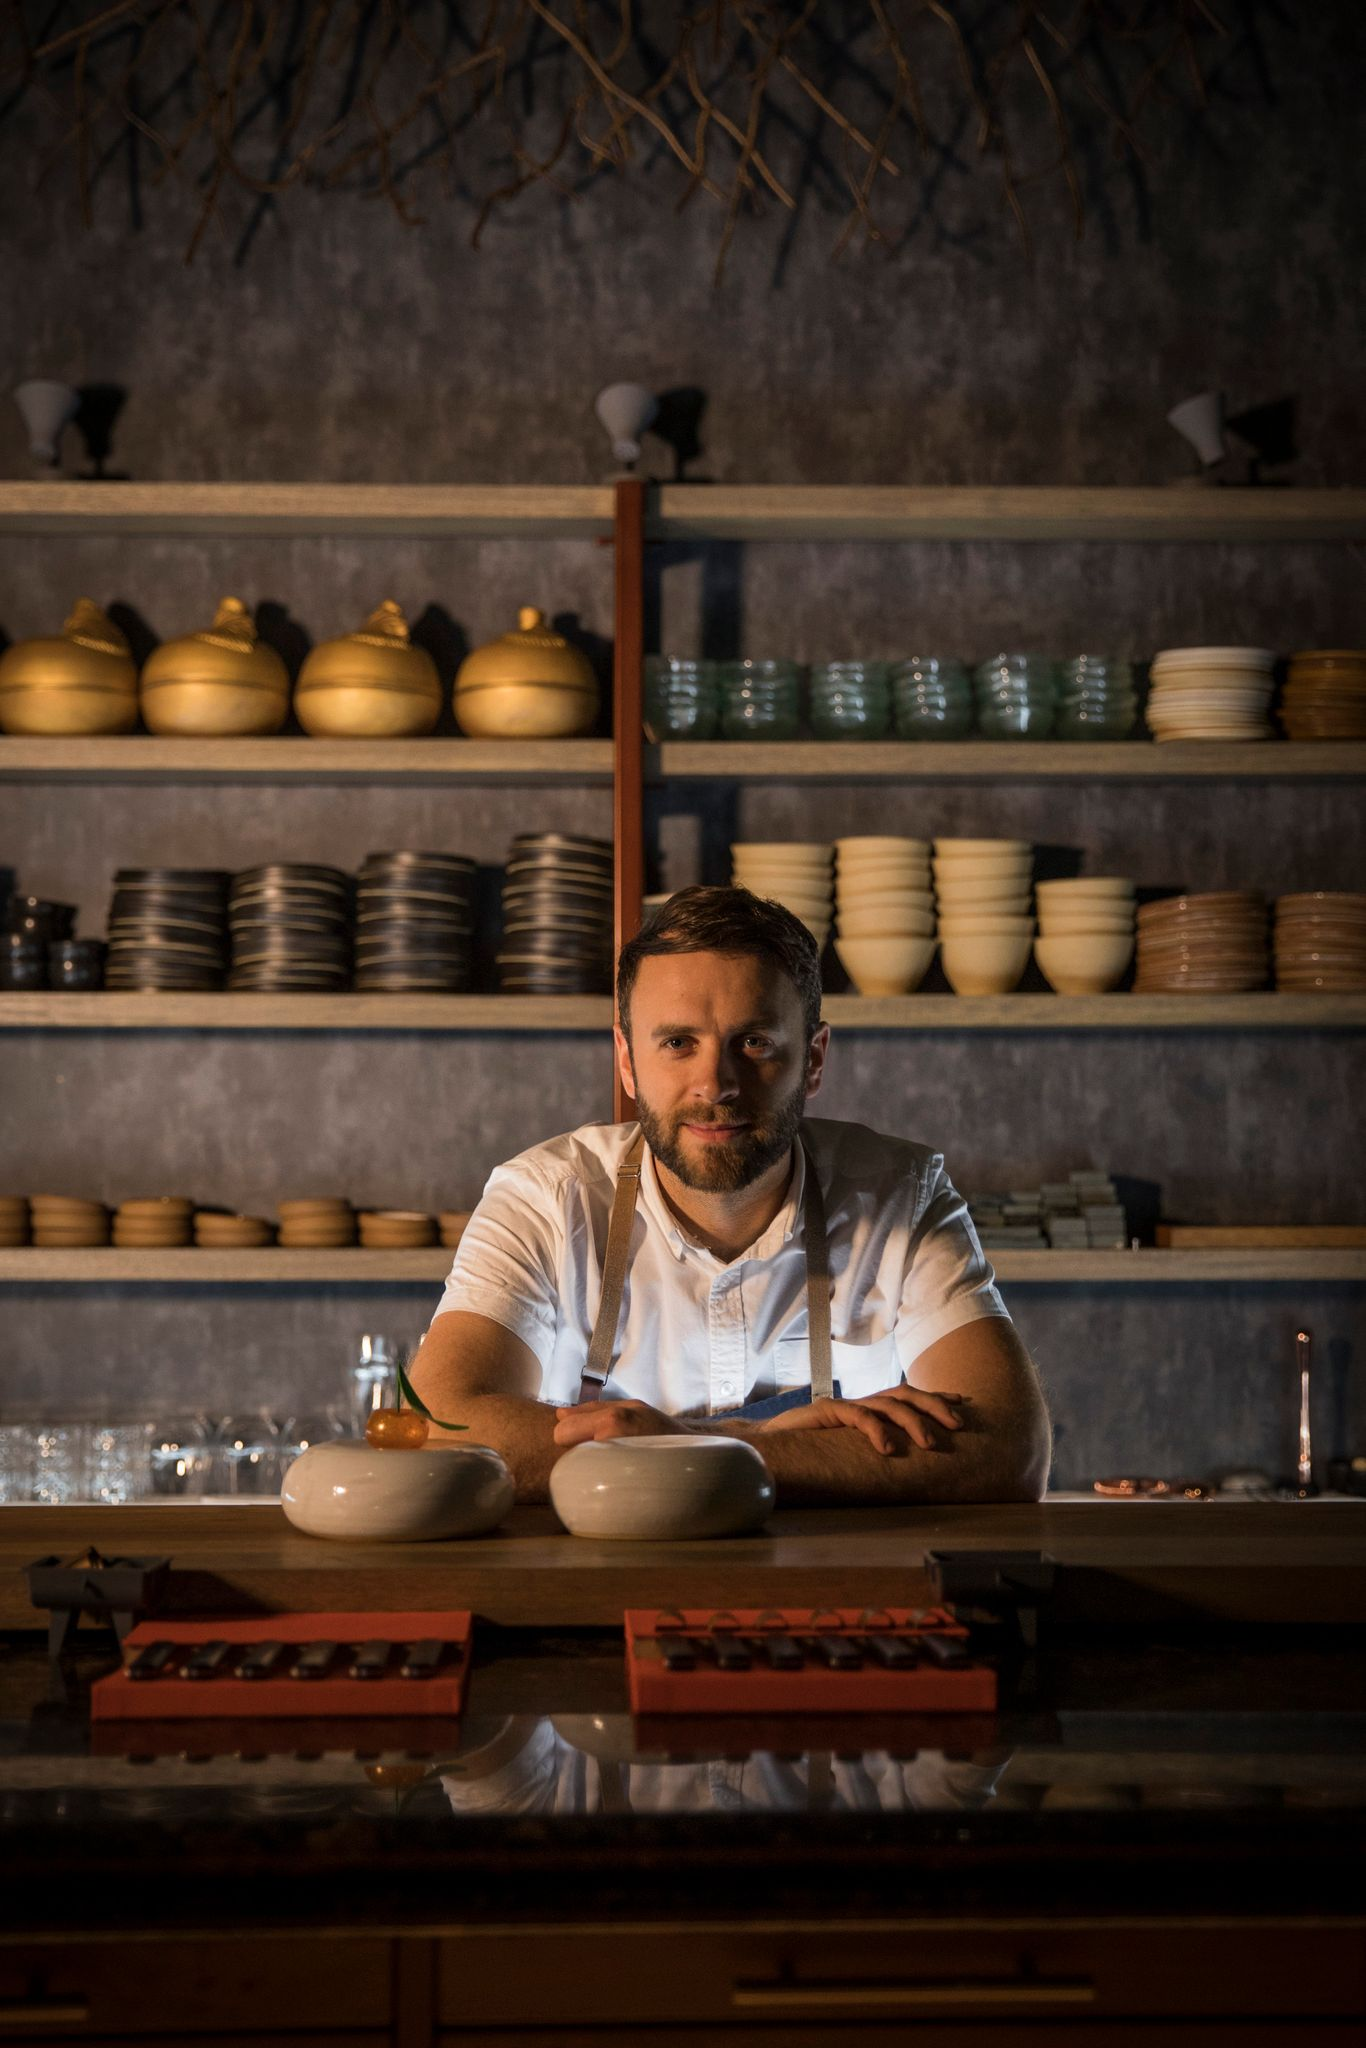 Manchester Food and Drink Festival – The City's First Covid Secure Festival Announced